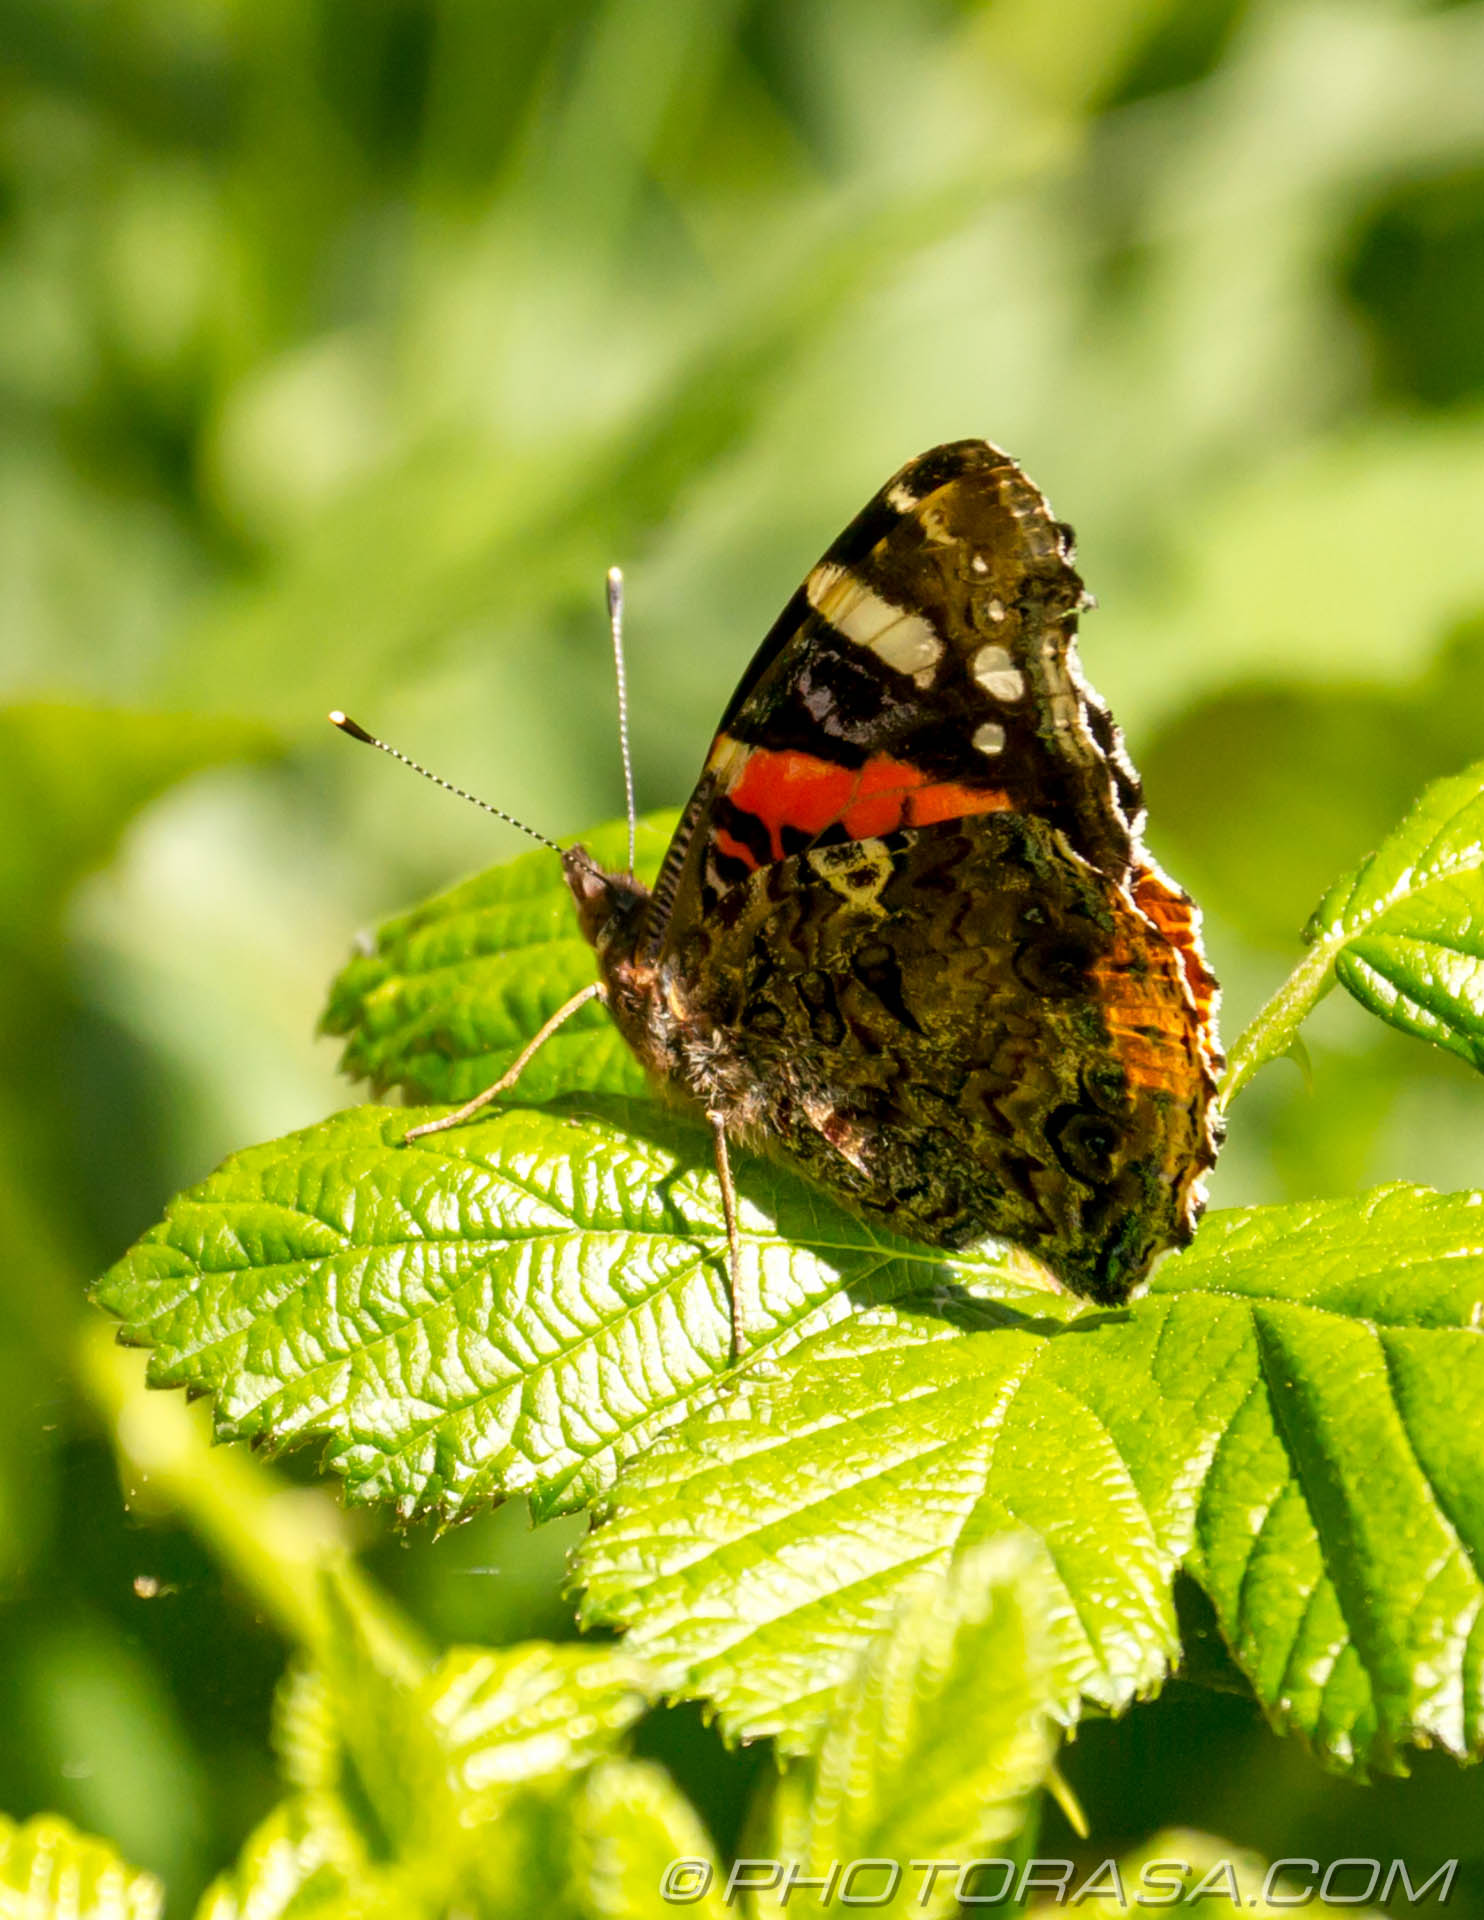 https://photorasa.com/red-admiral/red-admiral-perched-on-leaf/